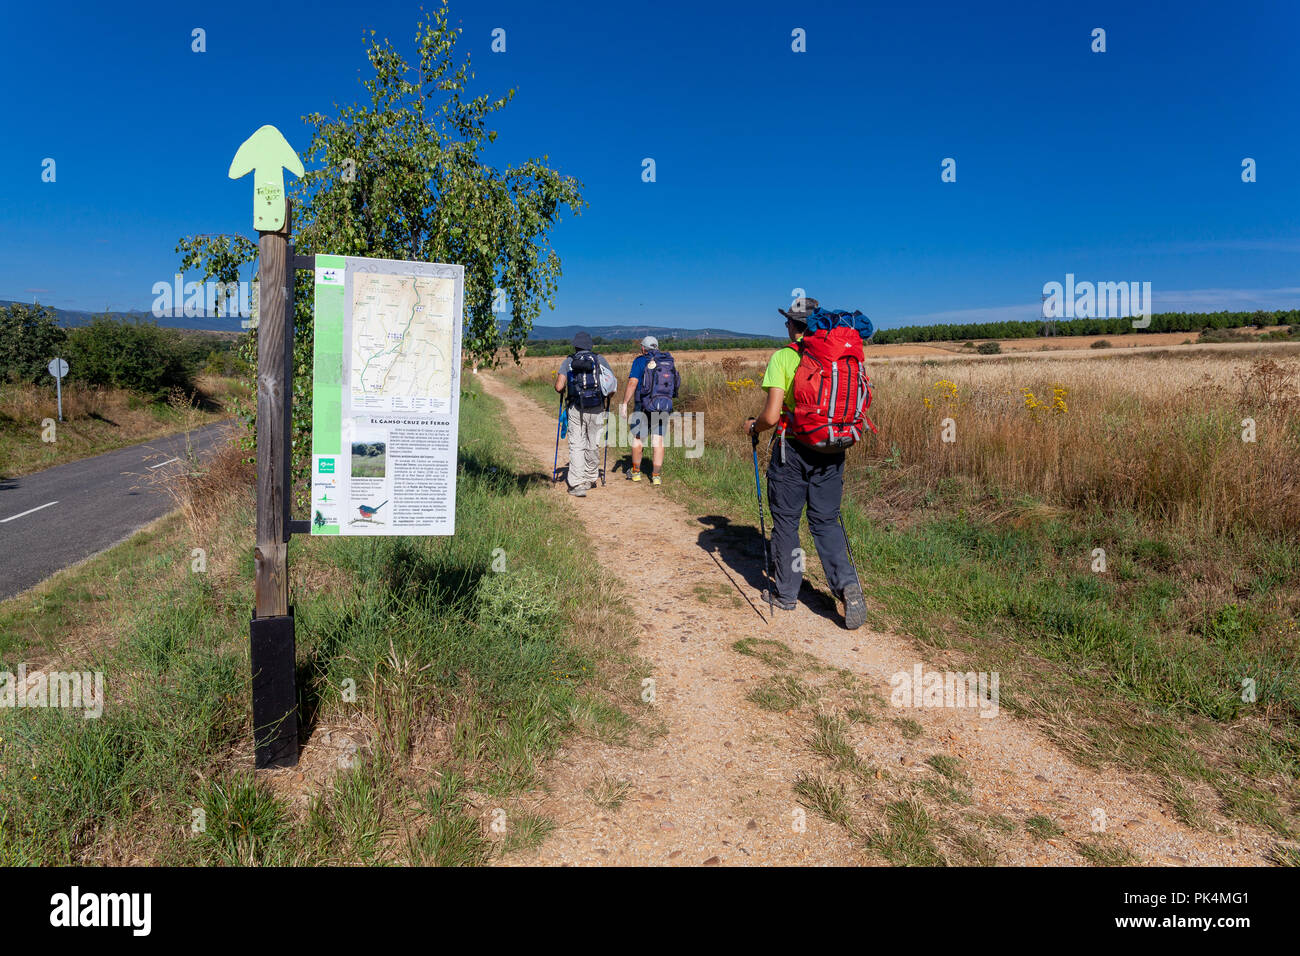 Walking on the route of El Ganso - Stock Image